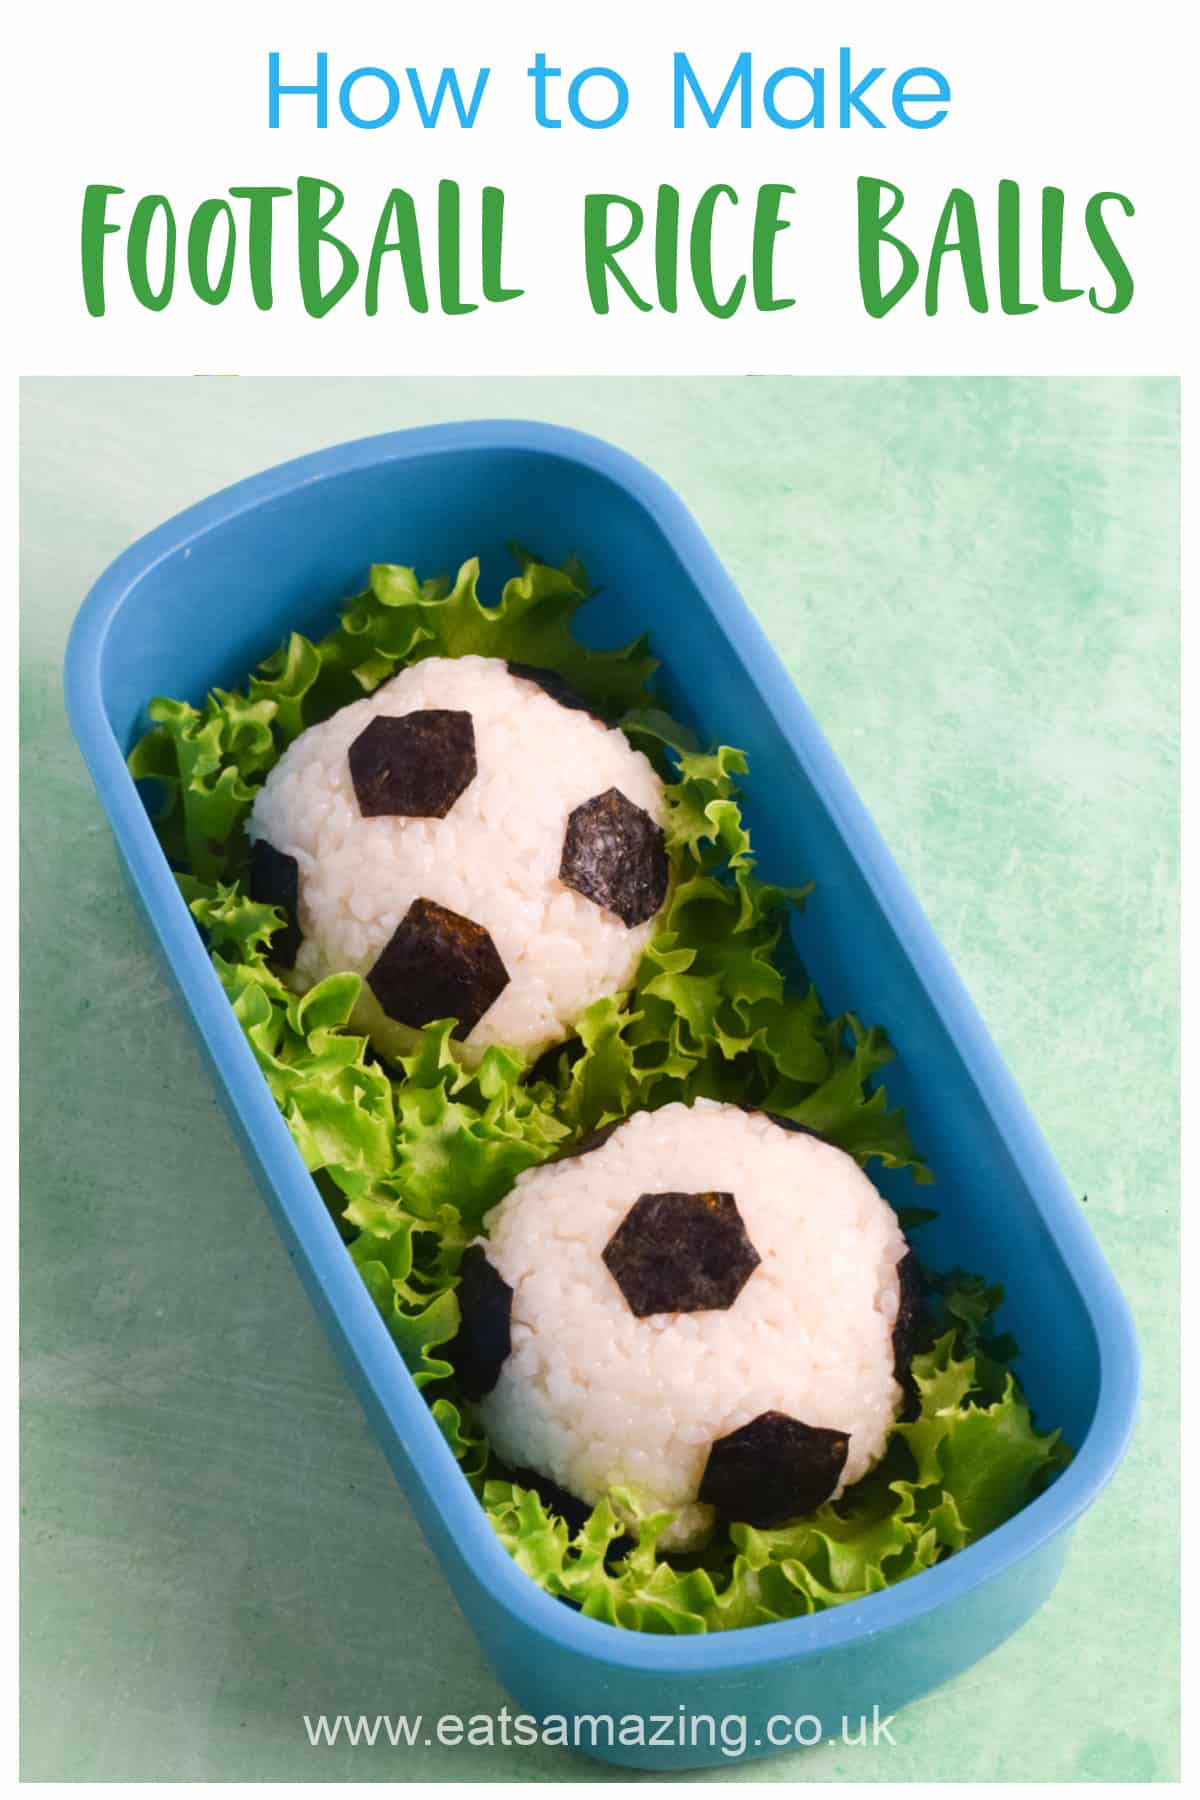 How to make easy football themed tuna recipe balls recipe - perfect for bento boxes and party food